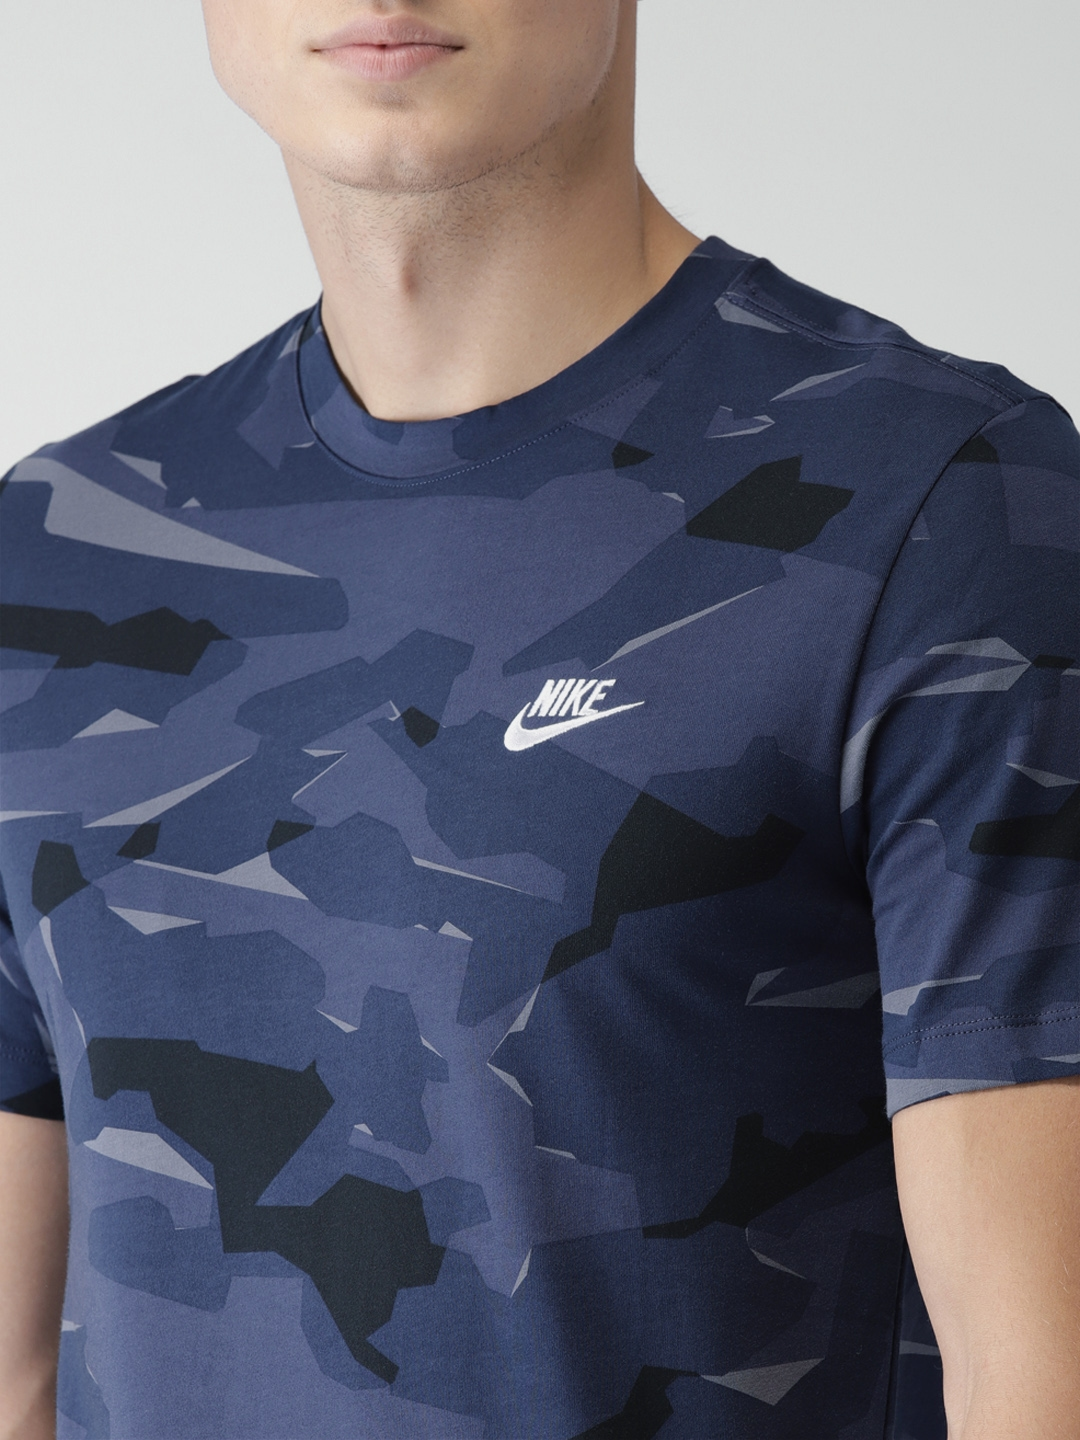 a06f3d05 Buy Nike Men Blue & Black Camouflage Printed NSW DRI FIT T Shirt ...